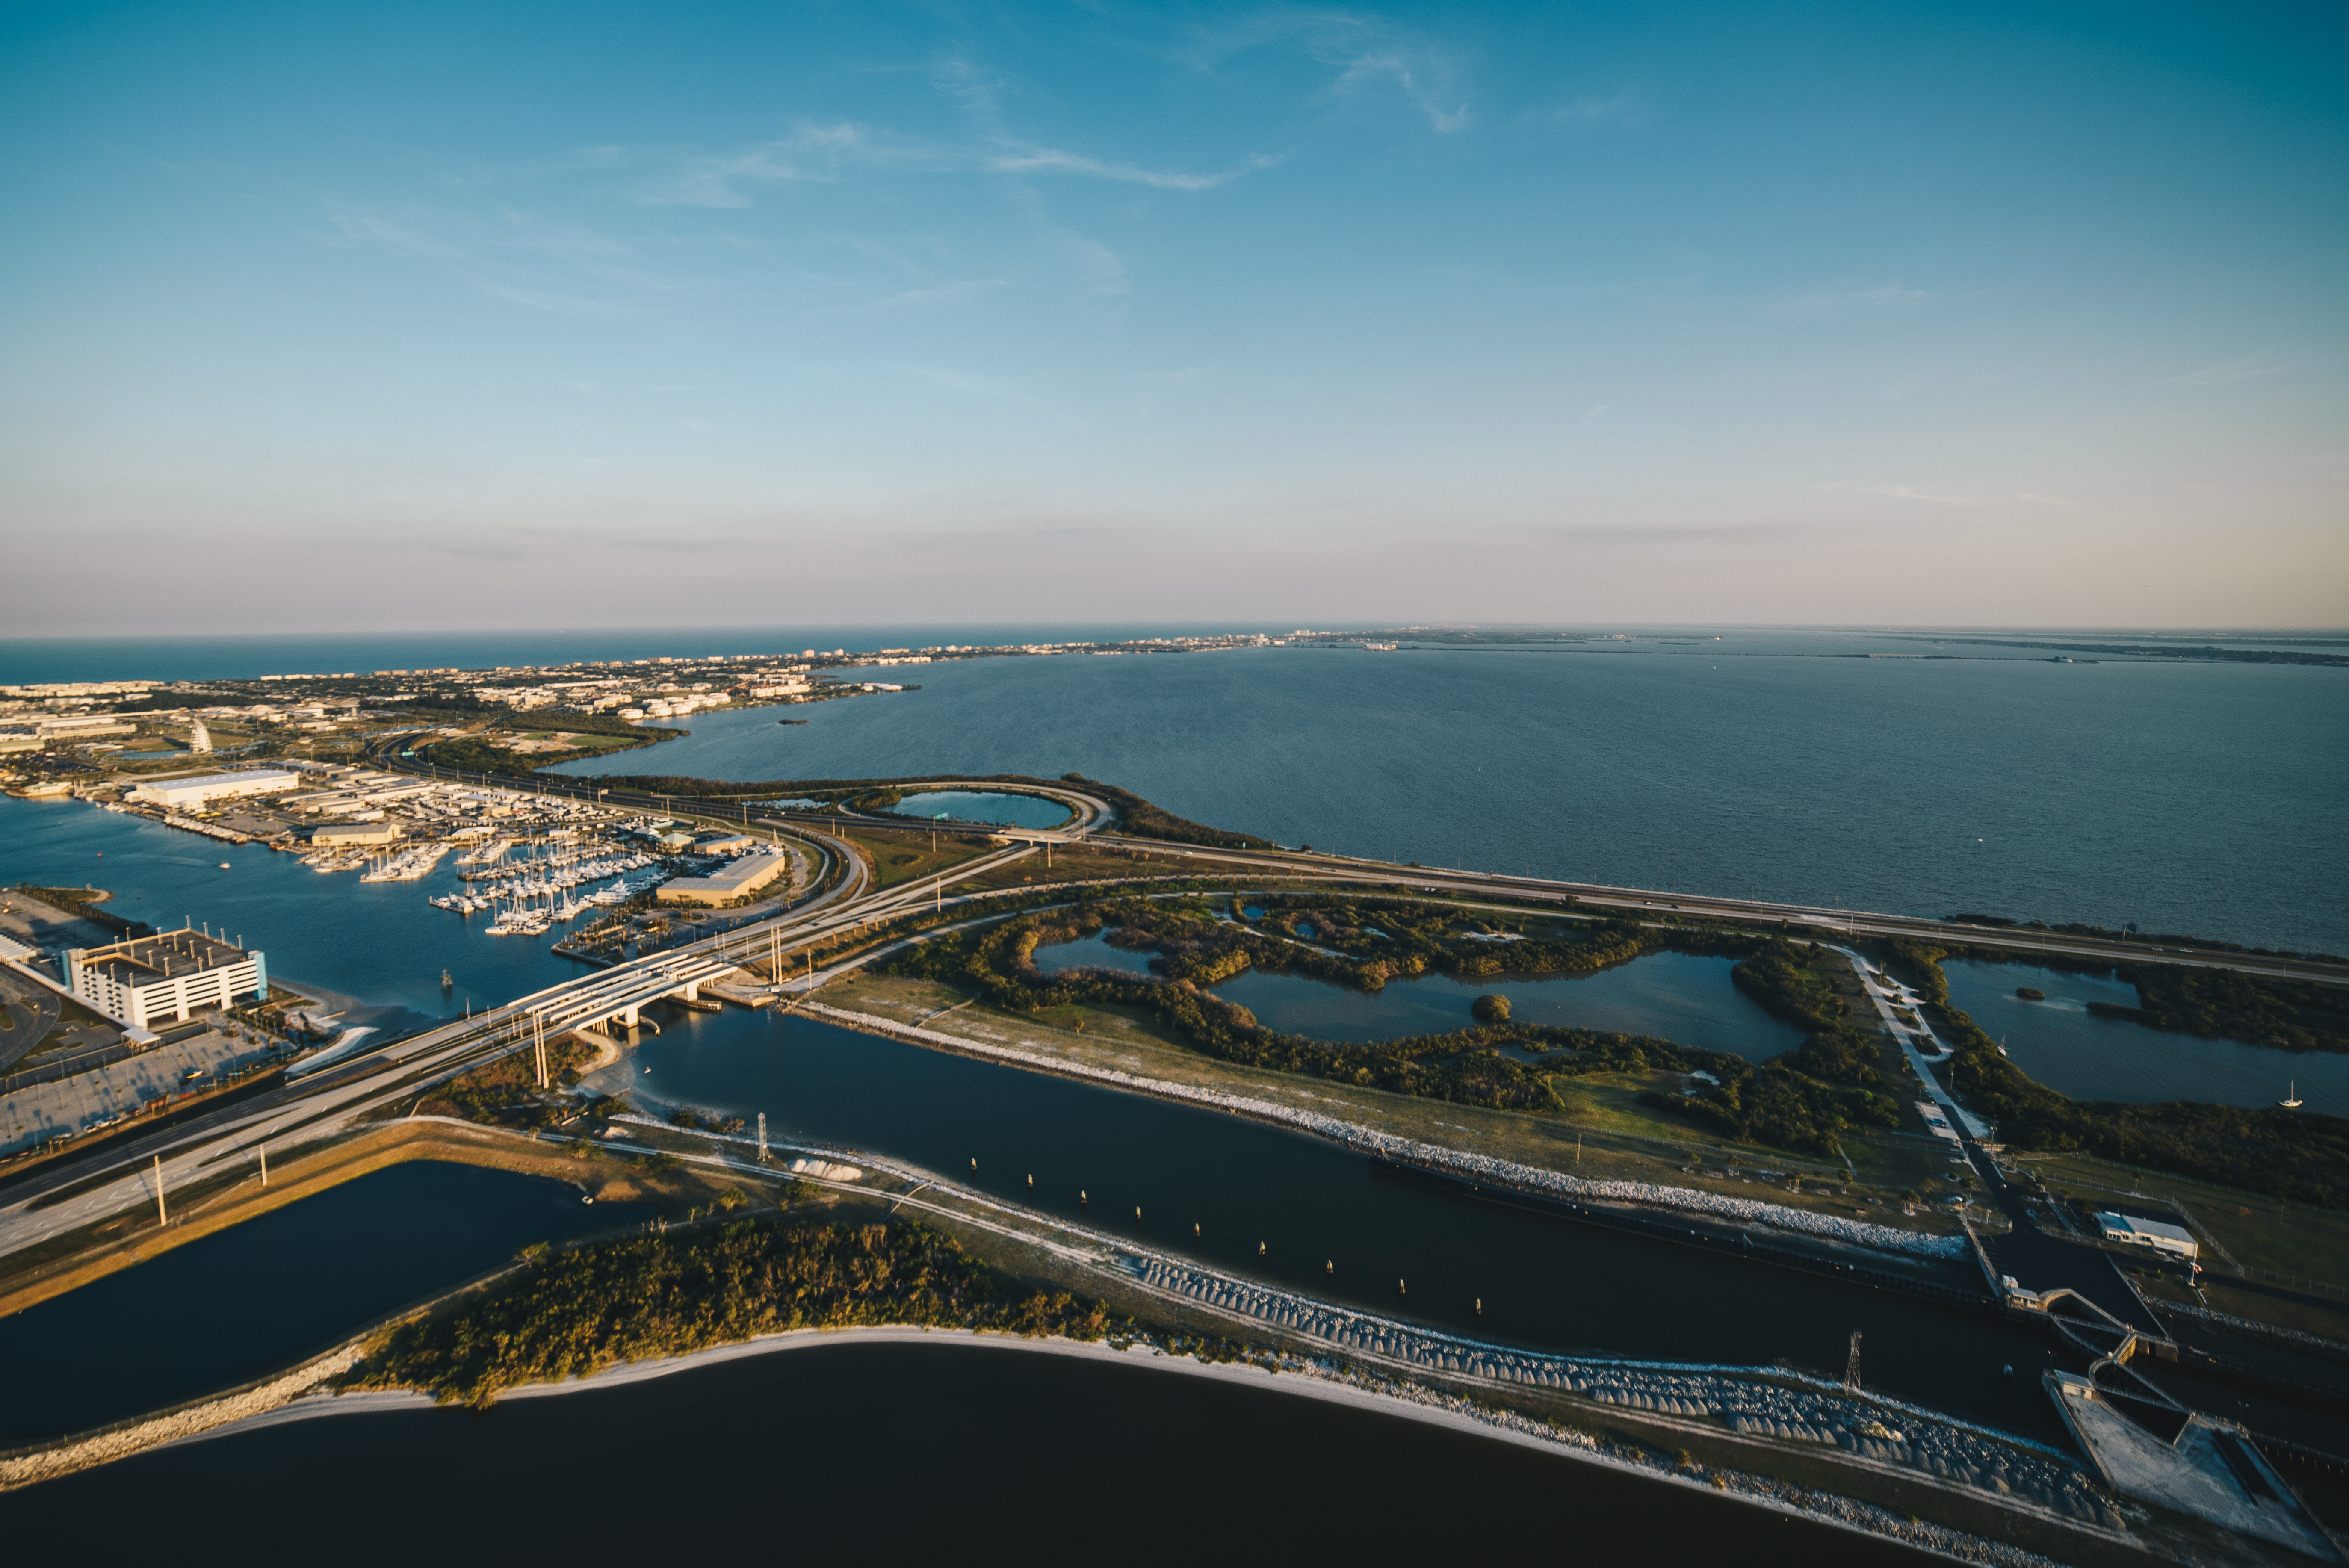 SR-40 and 528 interchange at Port Canaveral